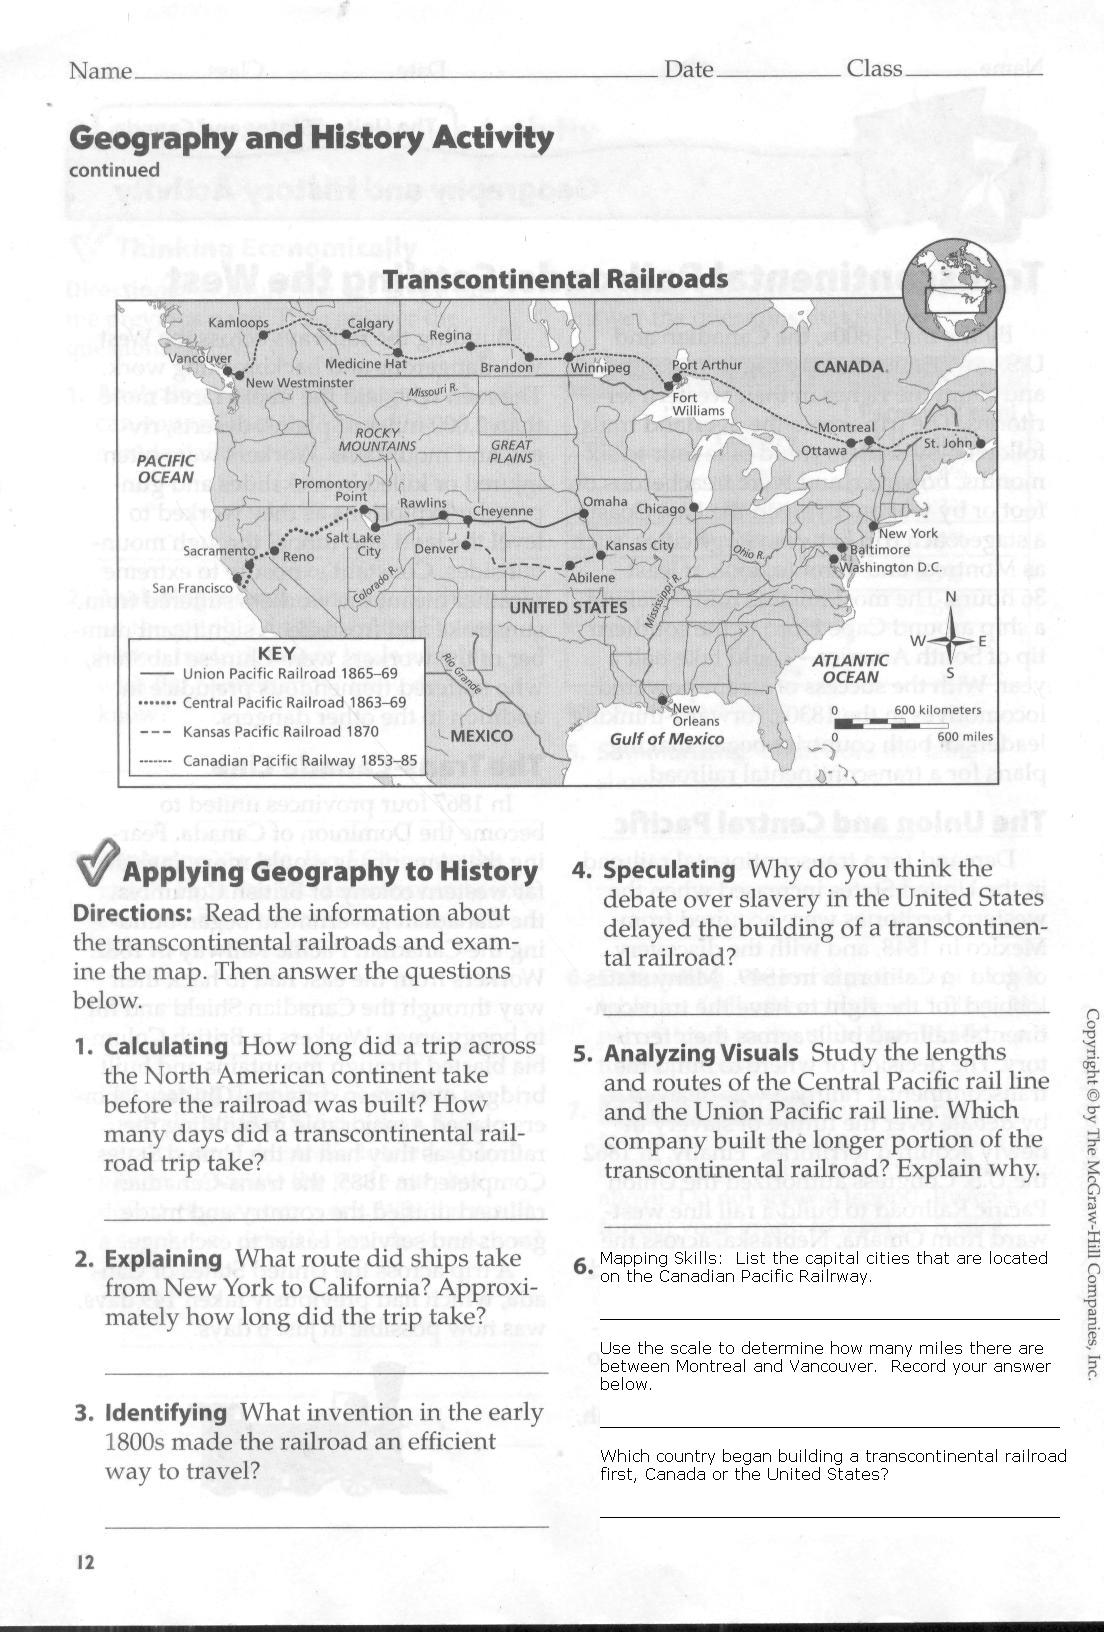 Pictures Transcontinental Railroad Worksheet - Studioxcess